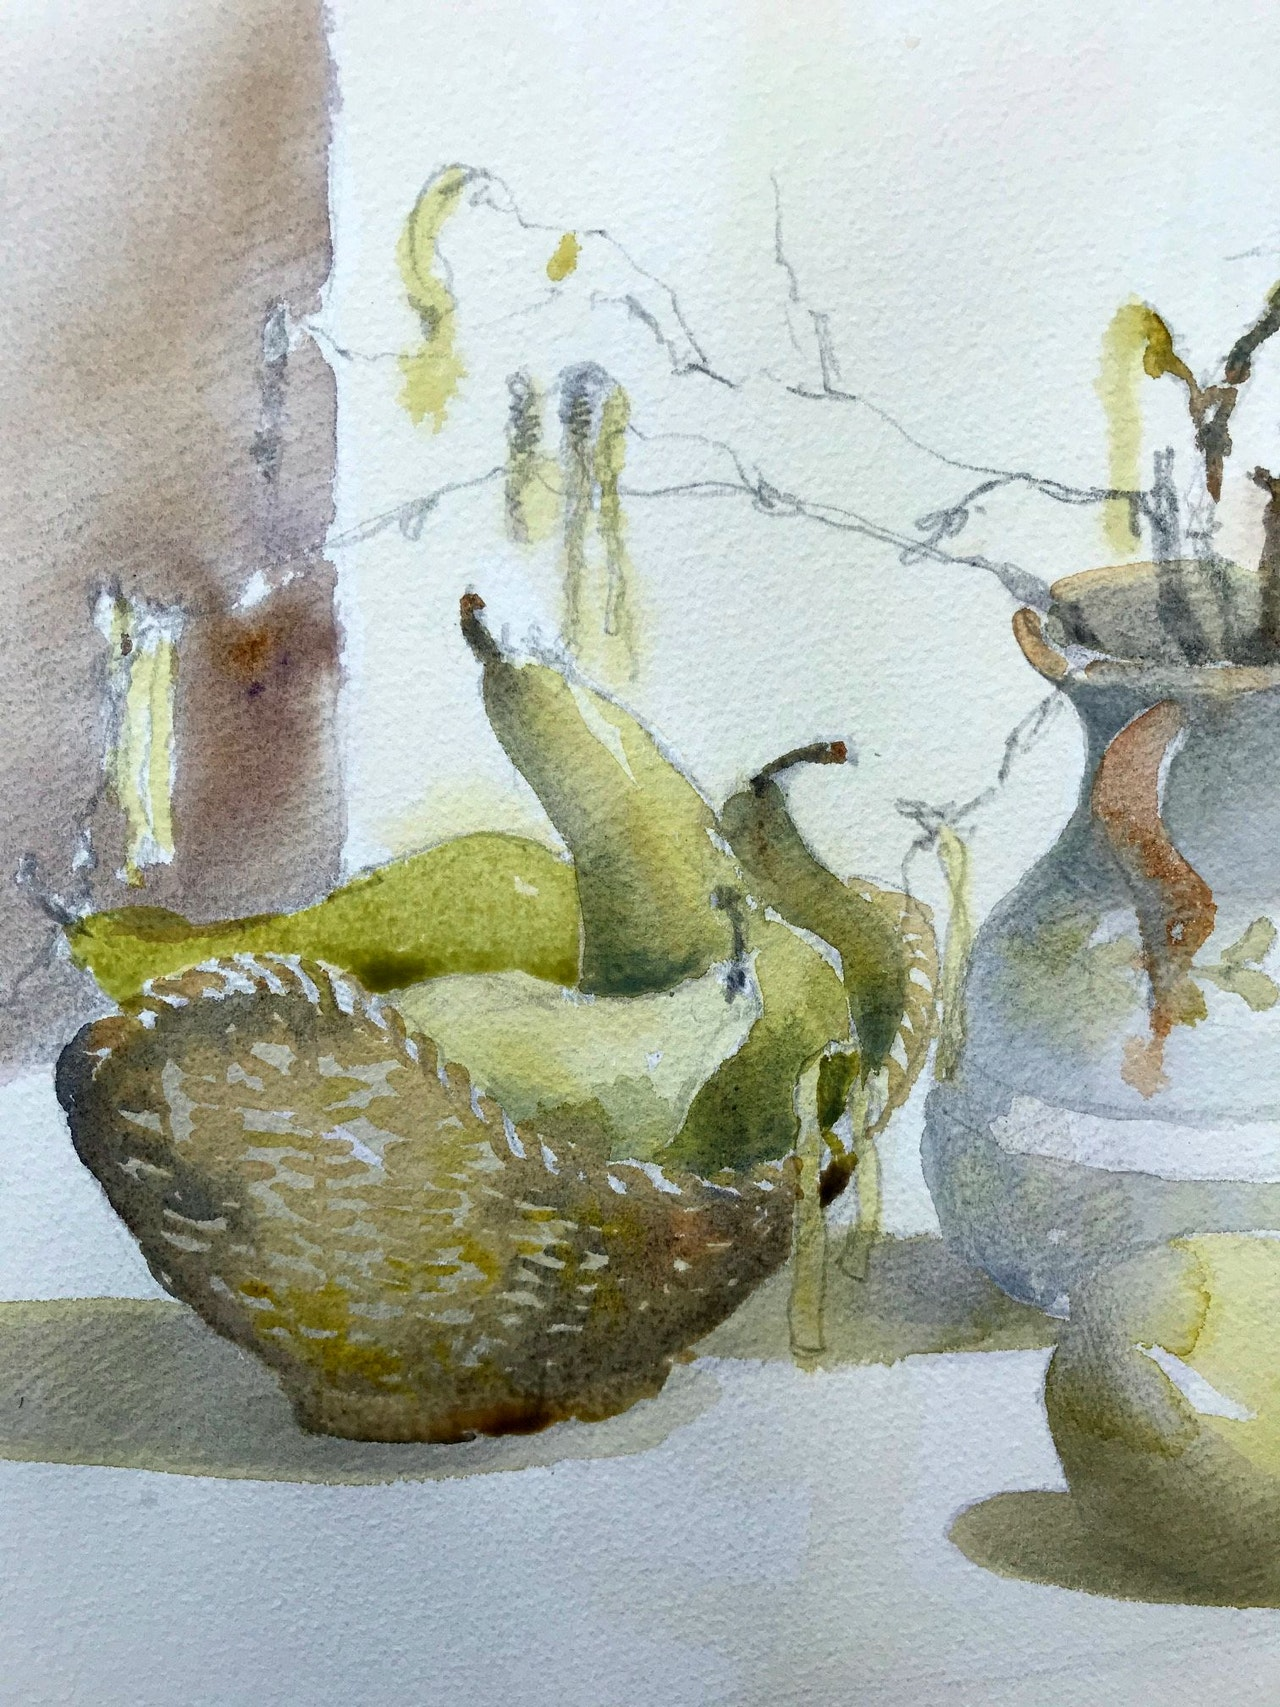 JJ5 Catkins and pears - initial washes. Final painting to follow shortly....